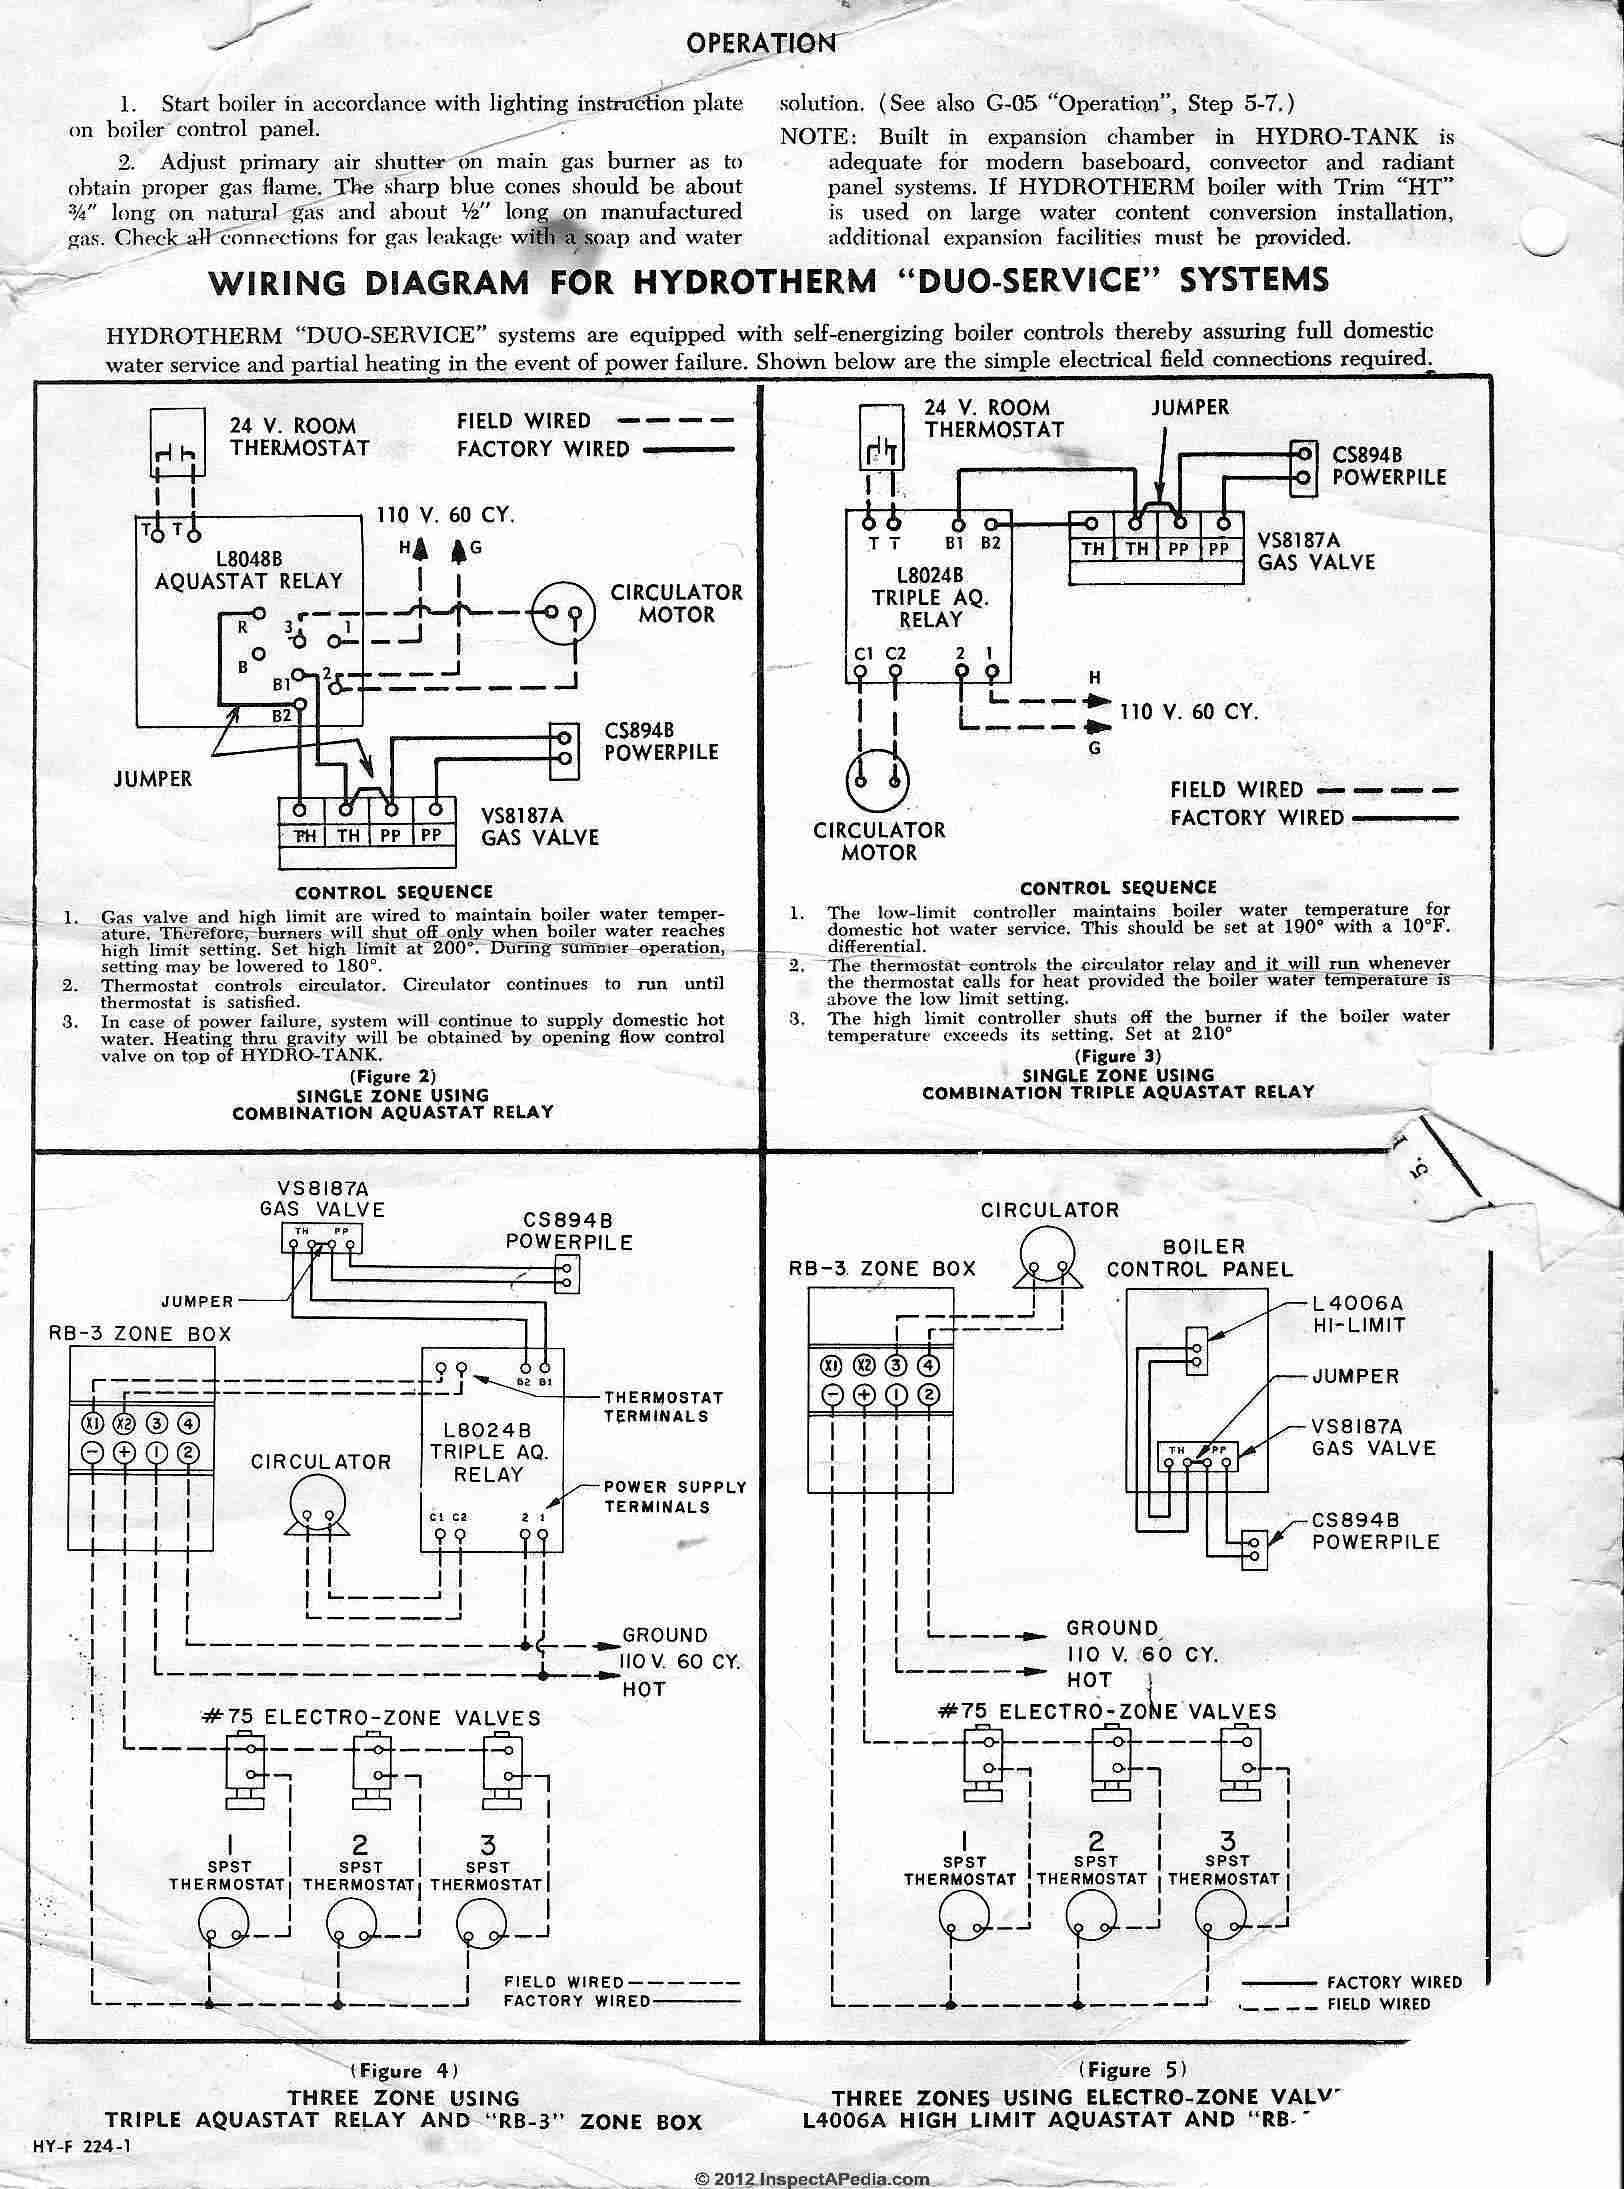 L8024B_Aquastat_0422_DJFcs heating boiler aquastat control diagnosis, troubleshooting, repair imit boiler thermostat wiring diagram at reclaimingppi.co